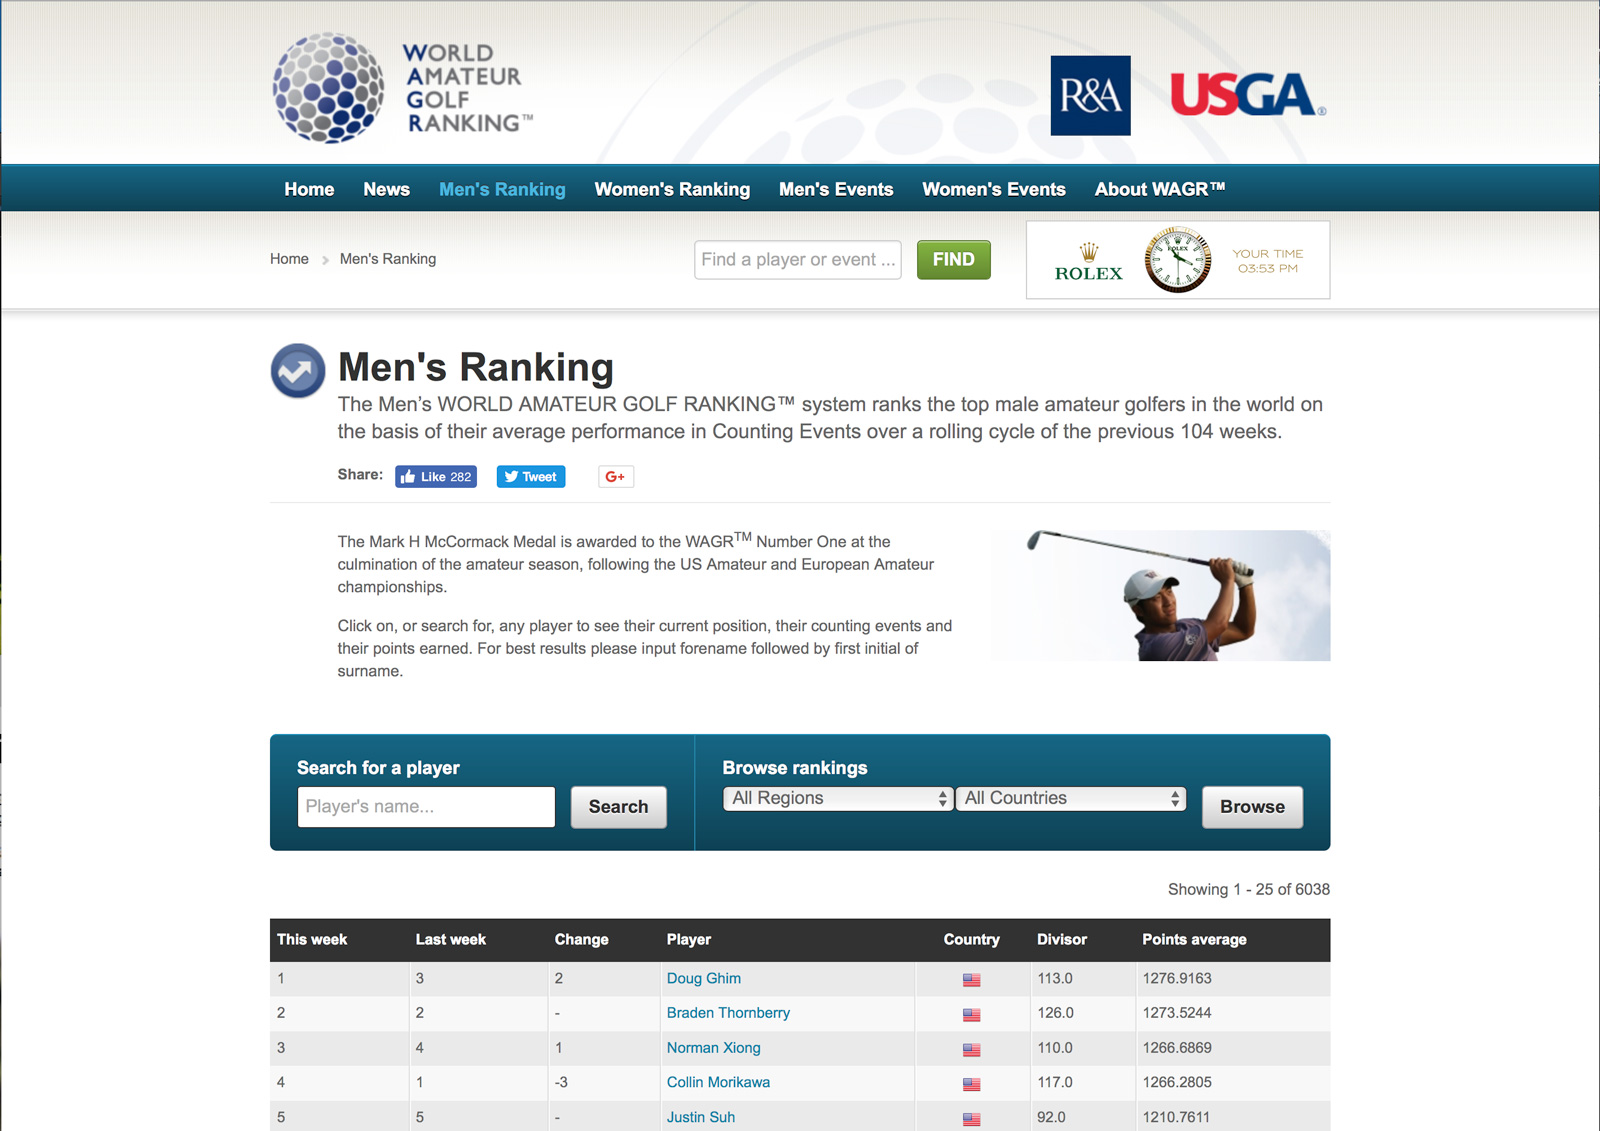 World Amateur Golf Ranking Website